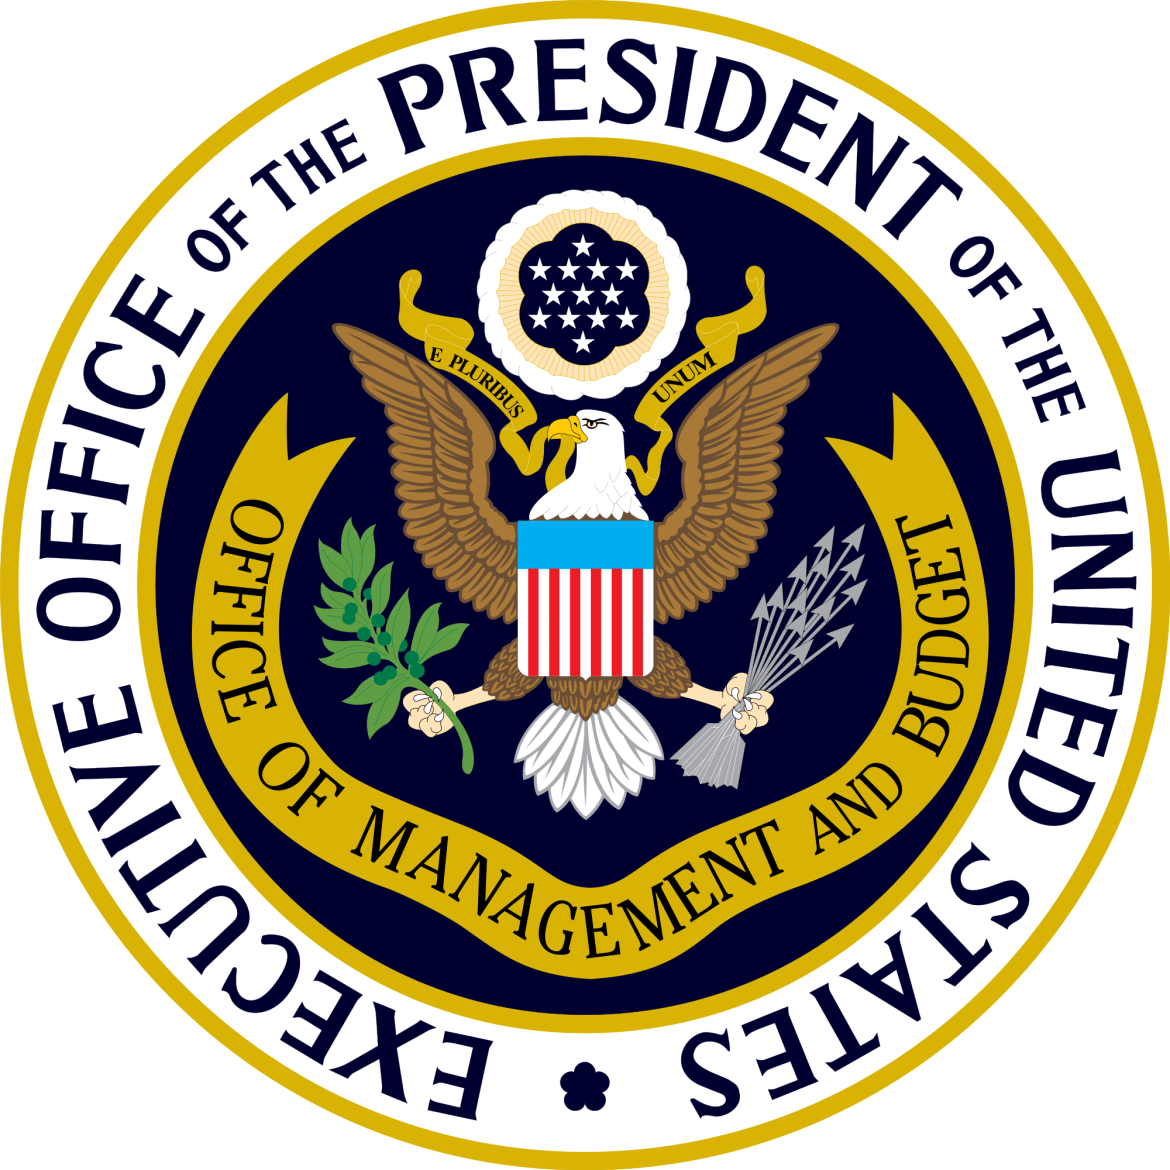 US Office of Management and Budget - White House